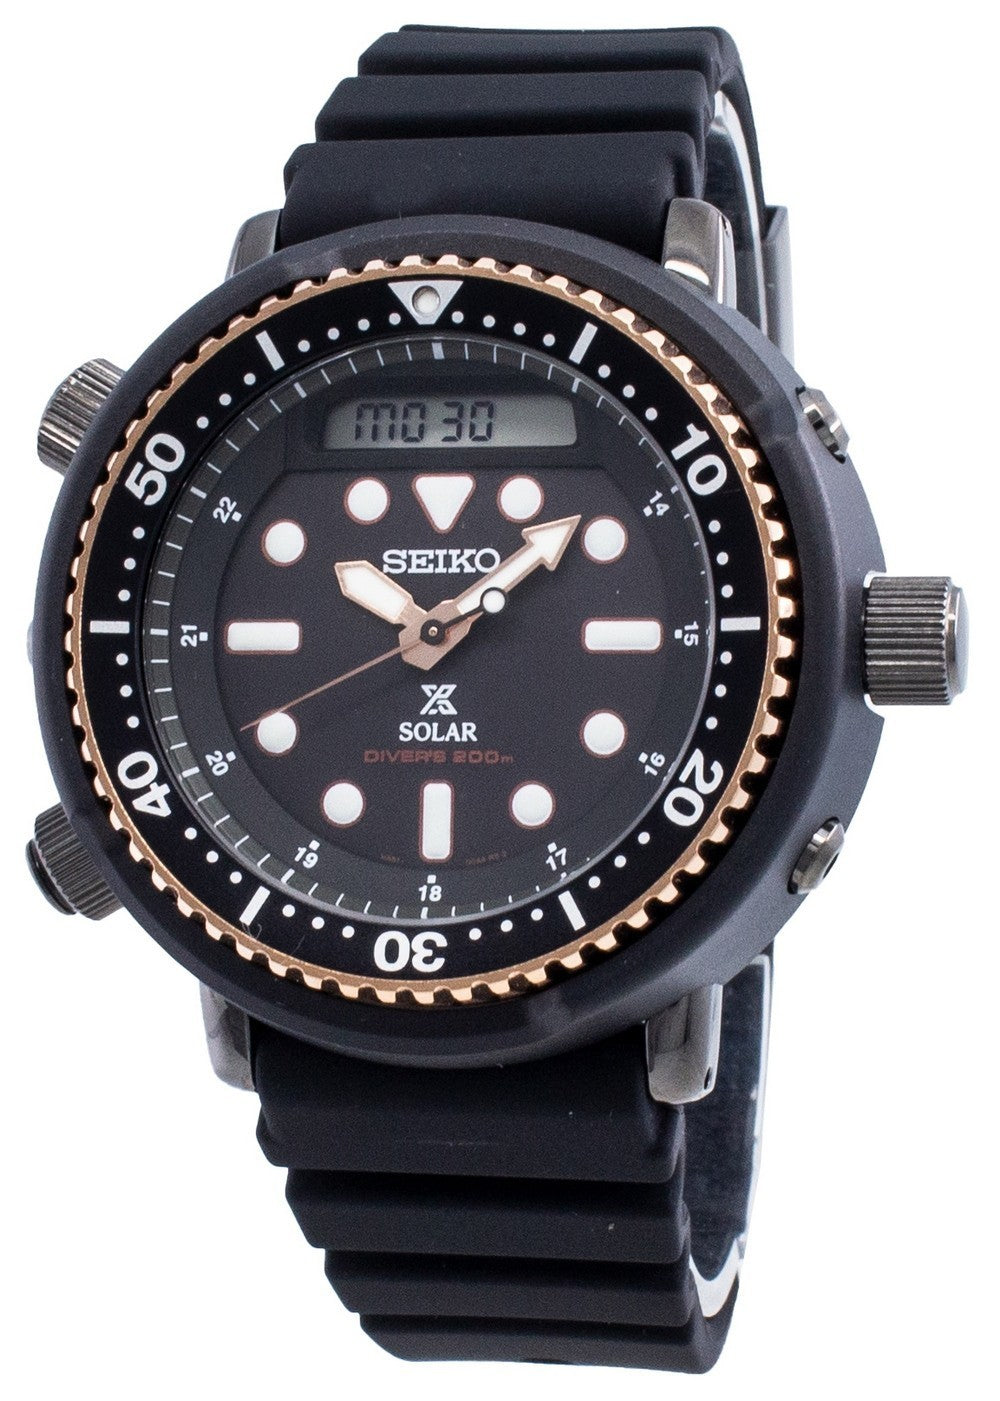 PROSPEX Diver's SNJ028P1 Solar 200M Men's Watch